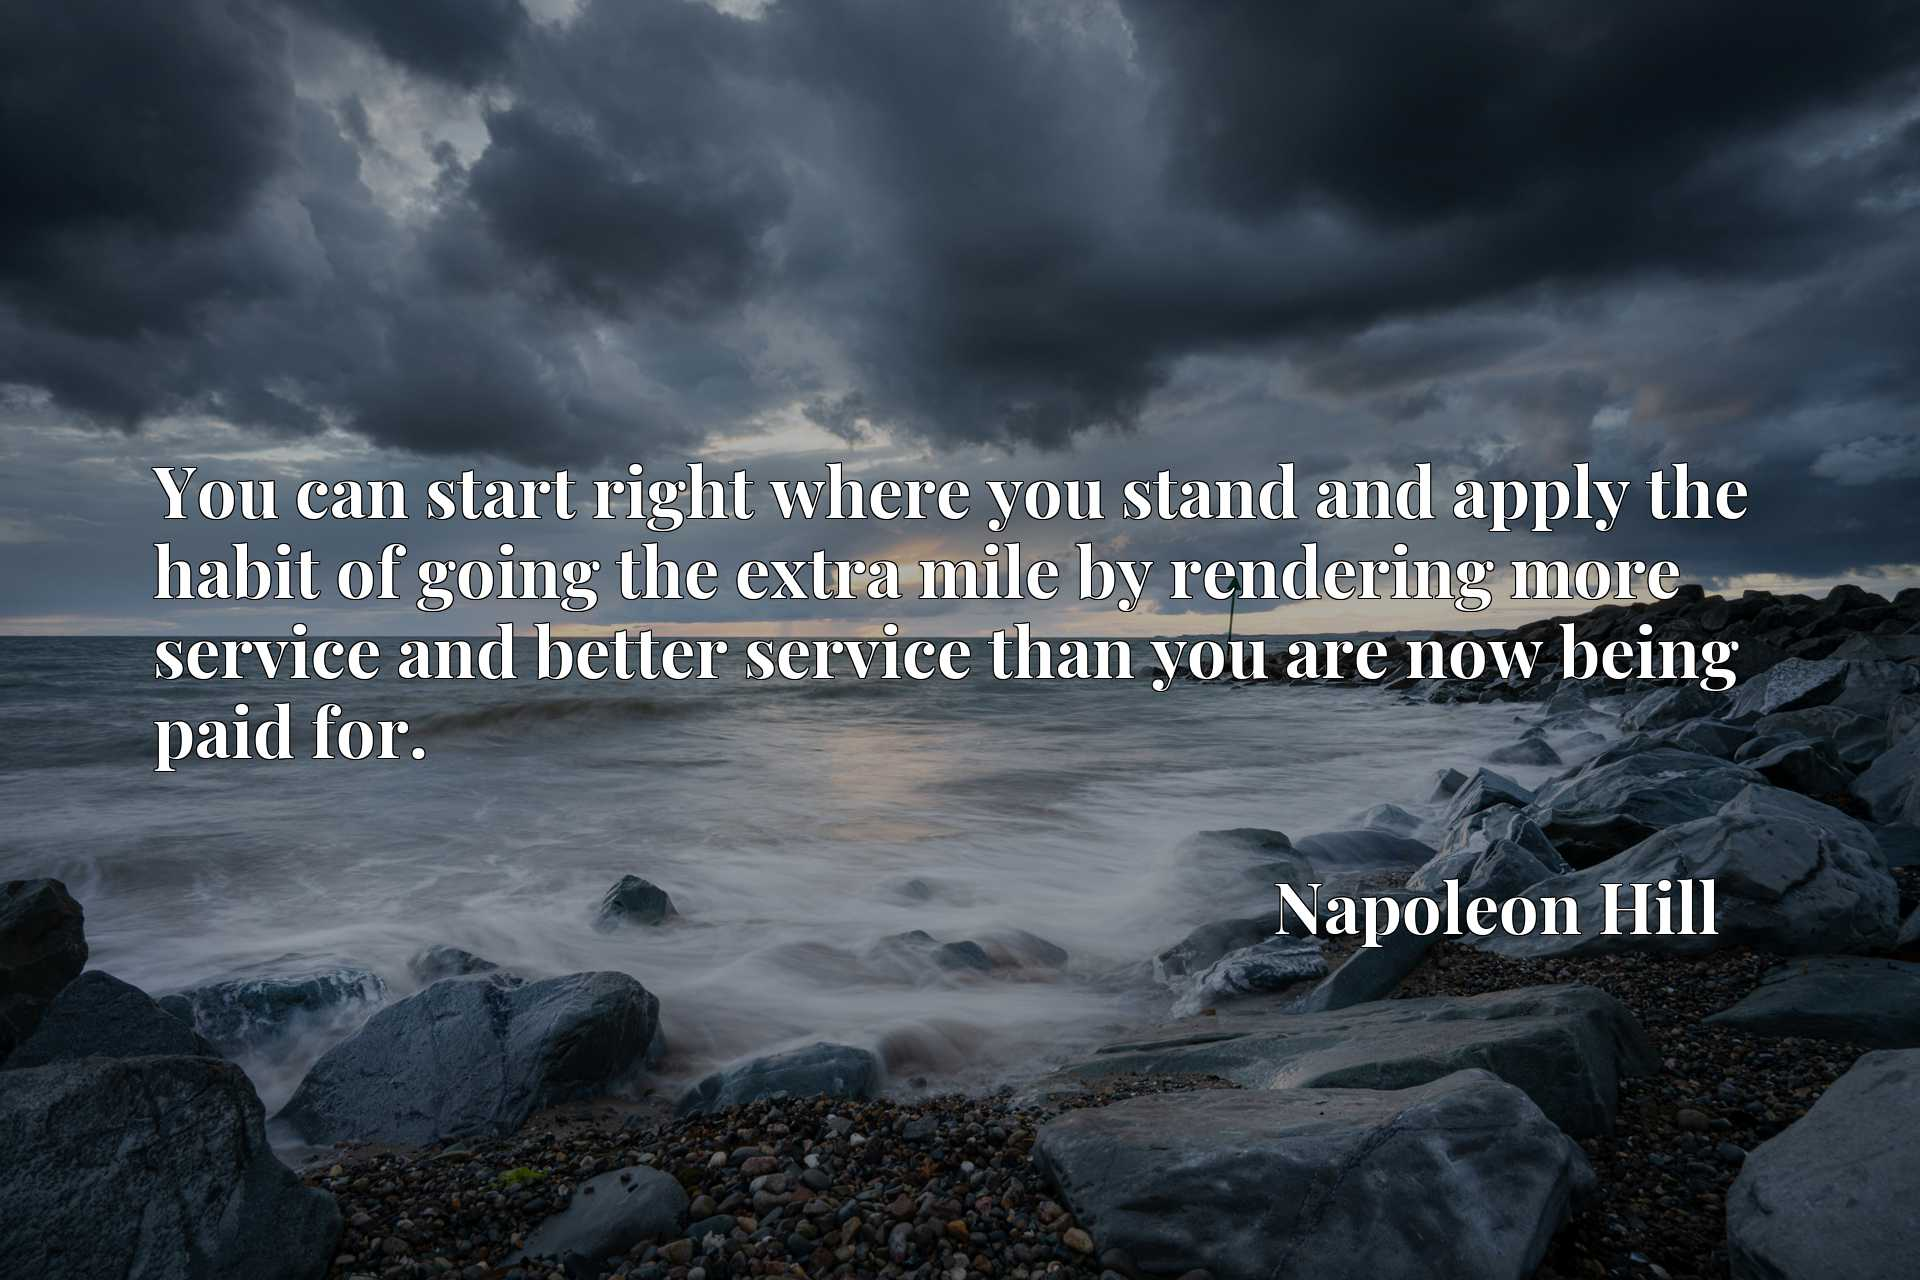 Quote Picture :You can start right where you stand and apply the habit of going the extra mile by rendering more service and better service than you are now being paid for.